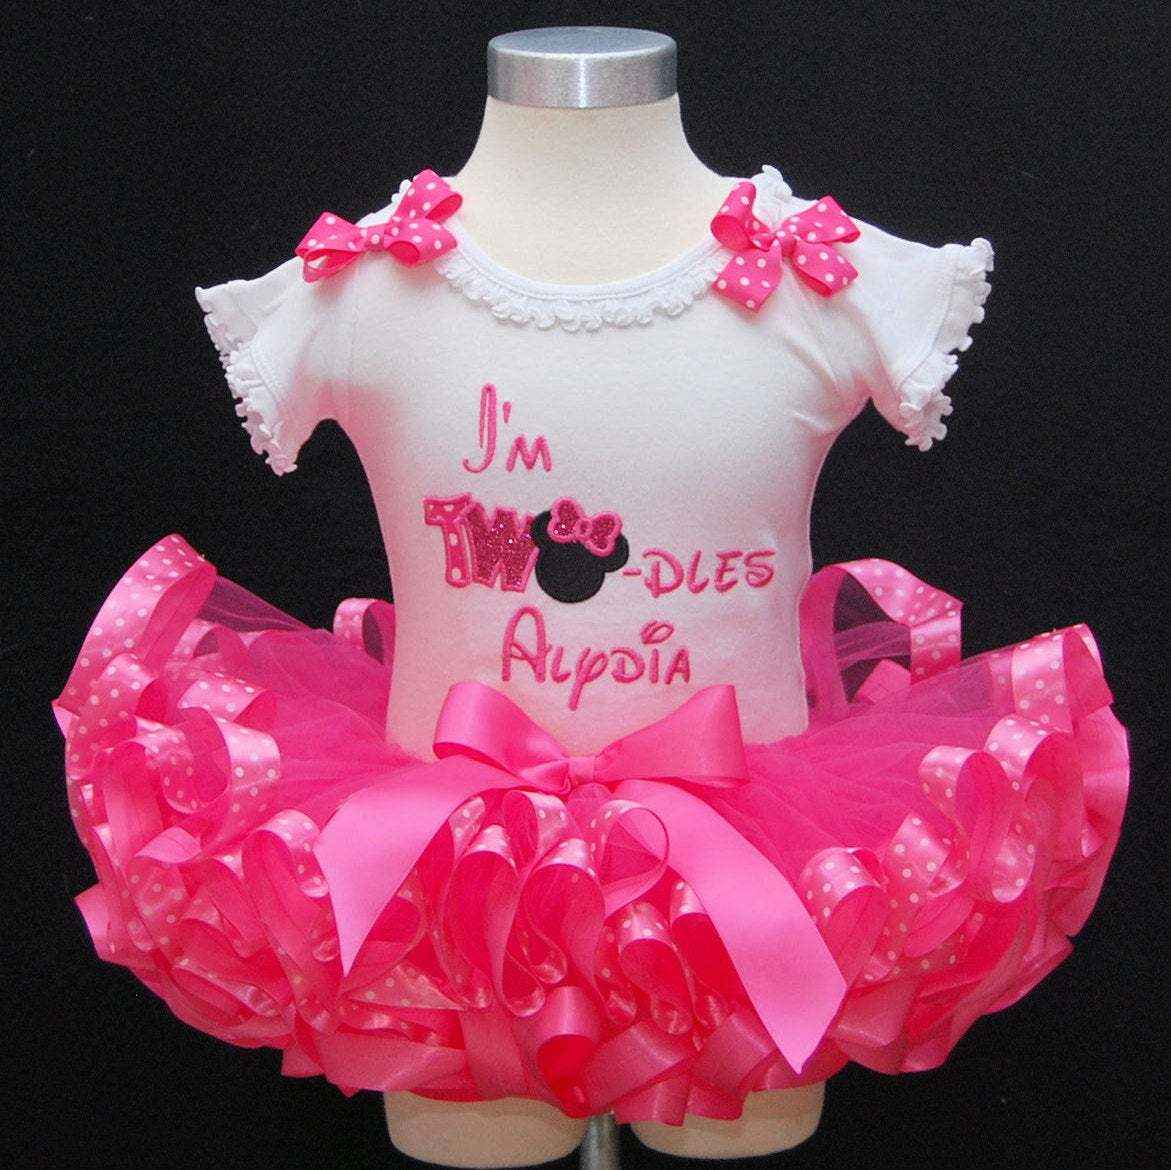 2nd Birthday Tutu Outfit, Minnie Mouse tutu outfit Im Twodles